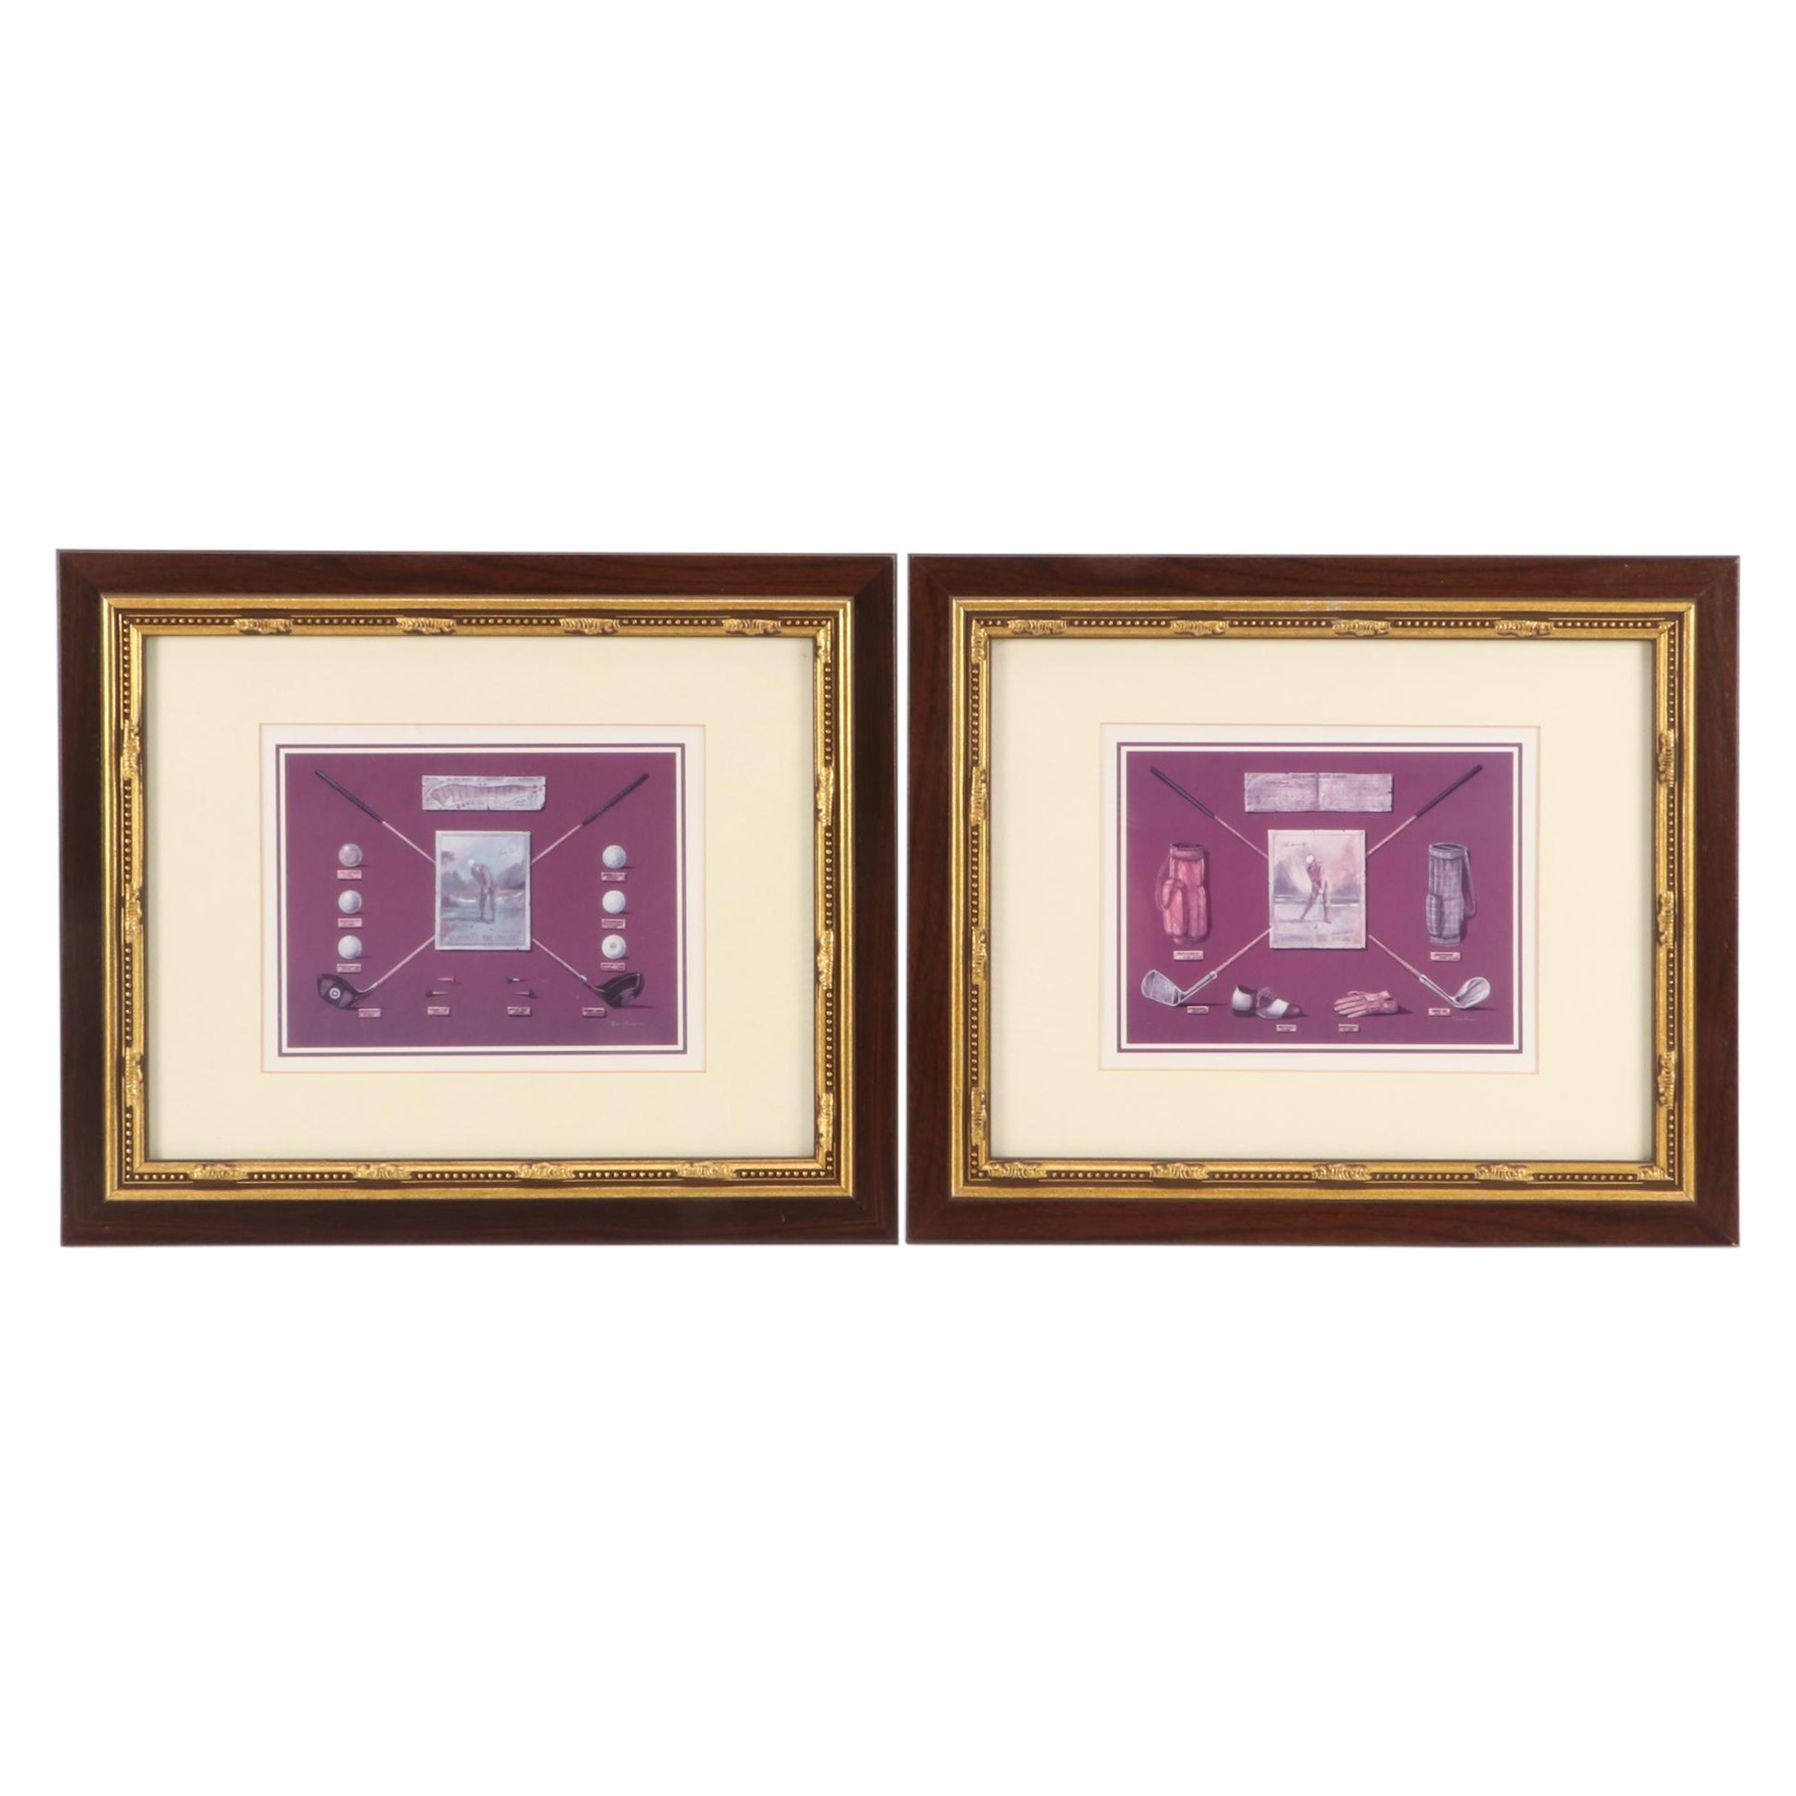 Two Golf Themed Offset Lithographs after Ruane Manning